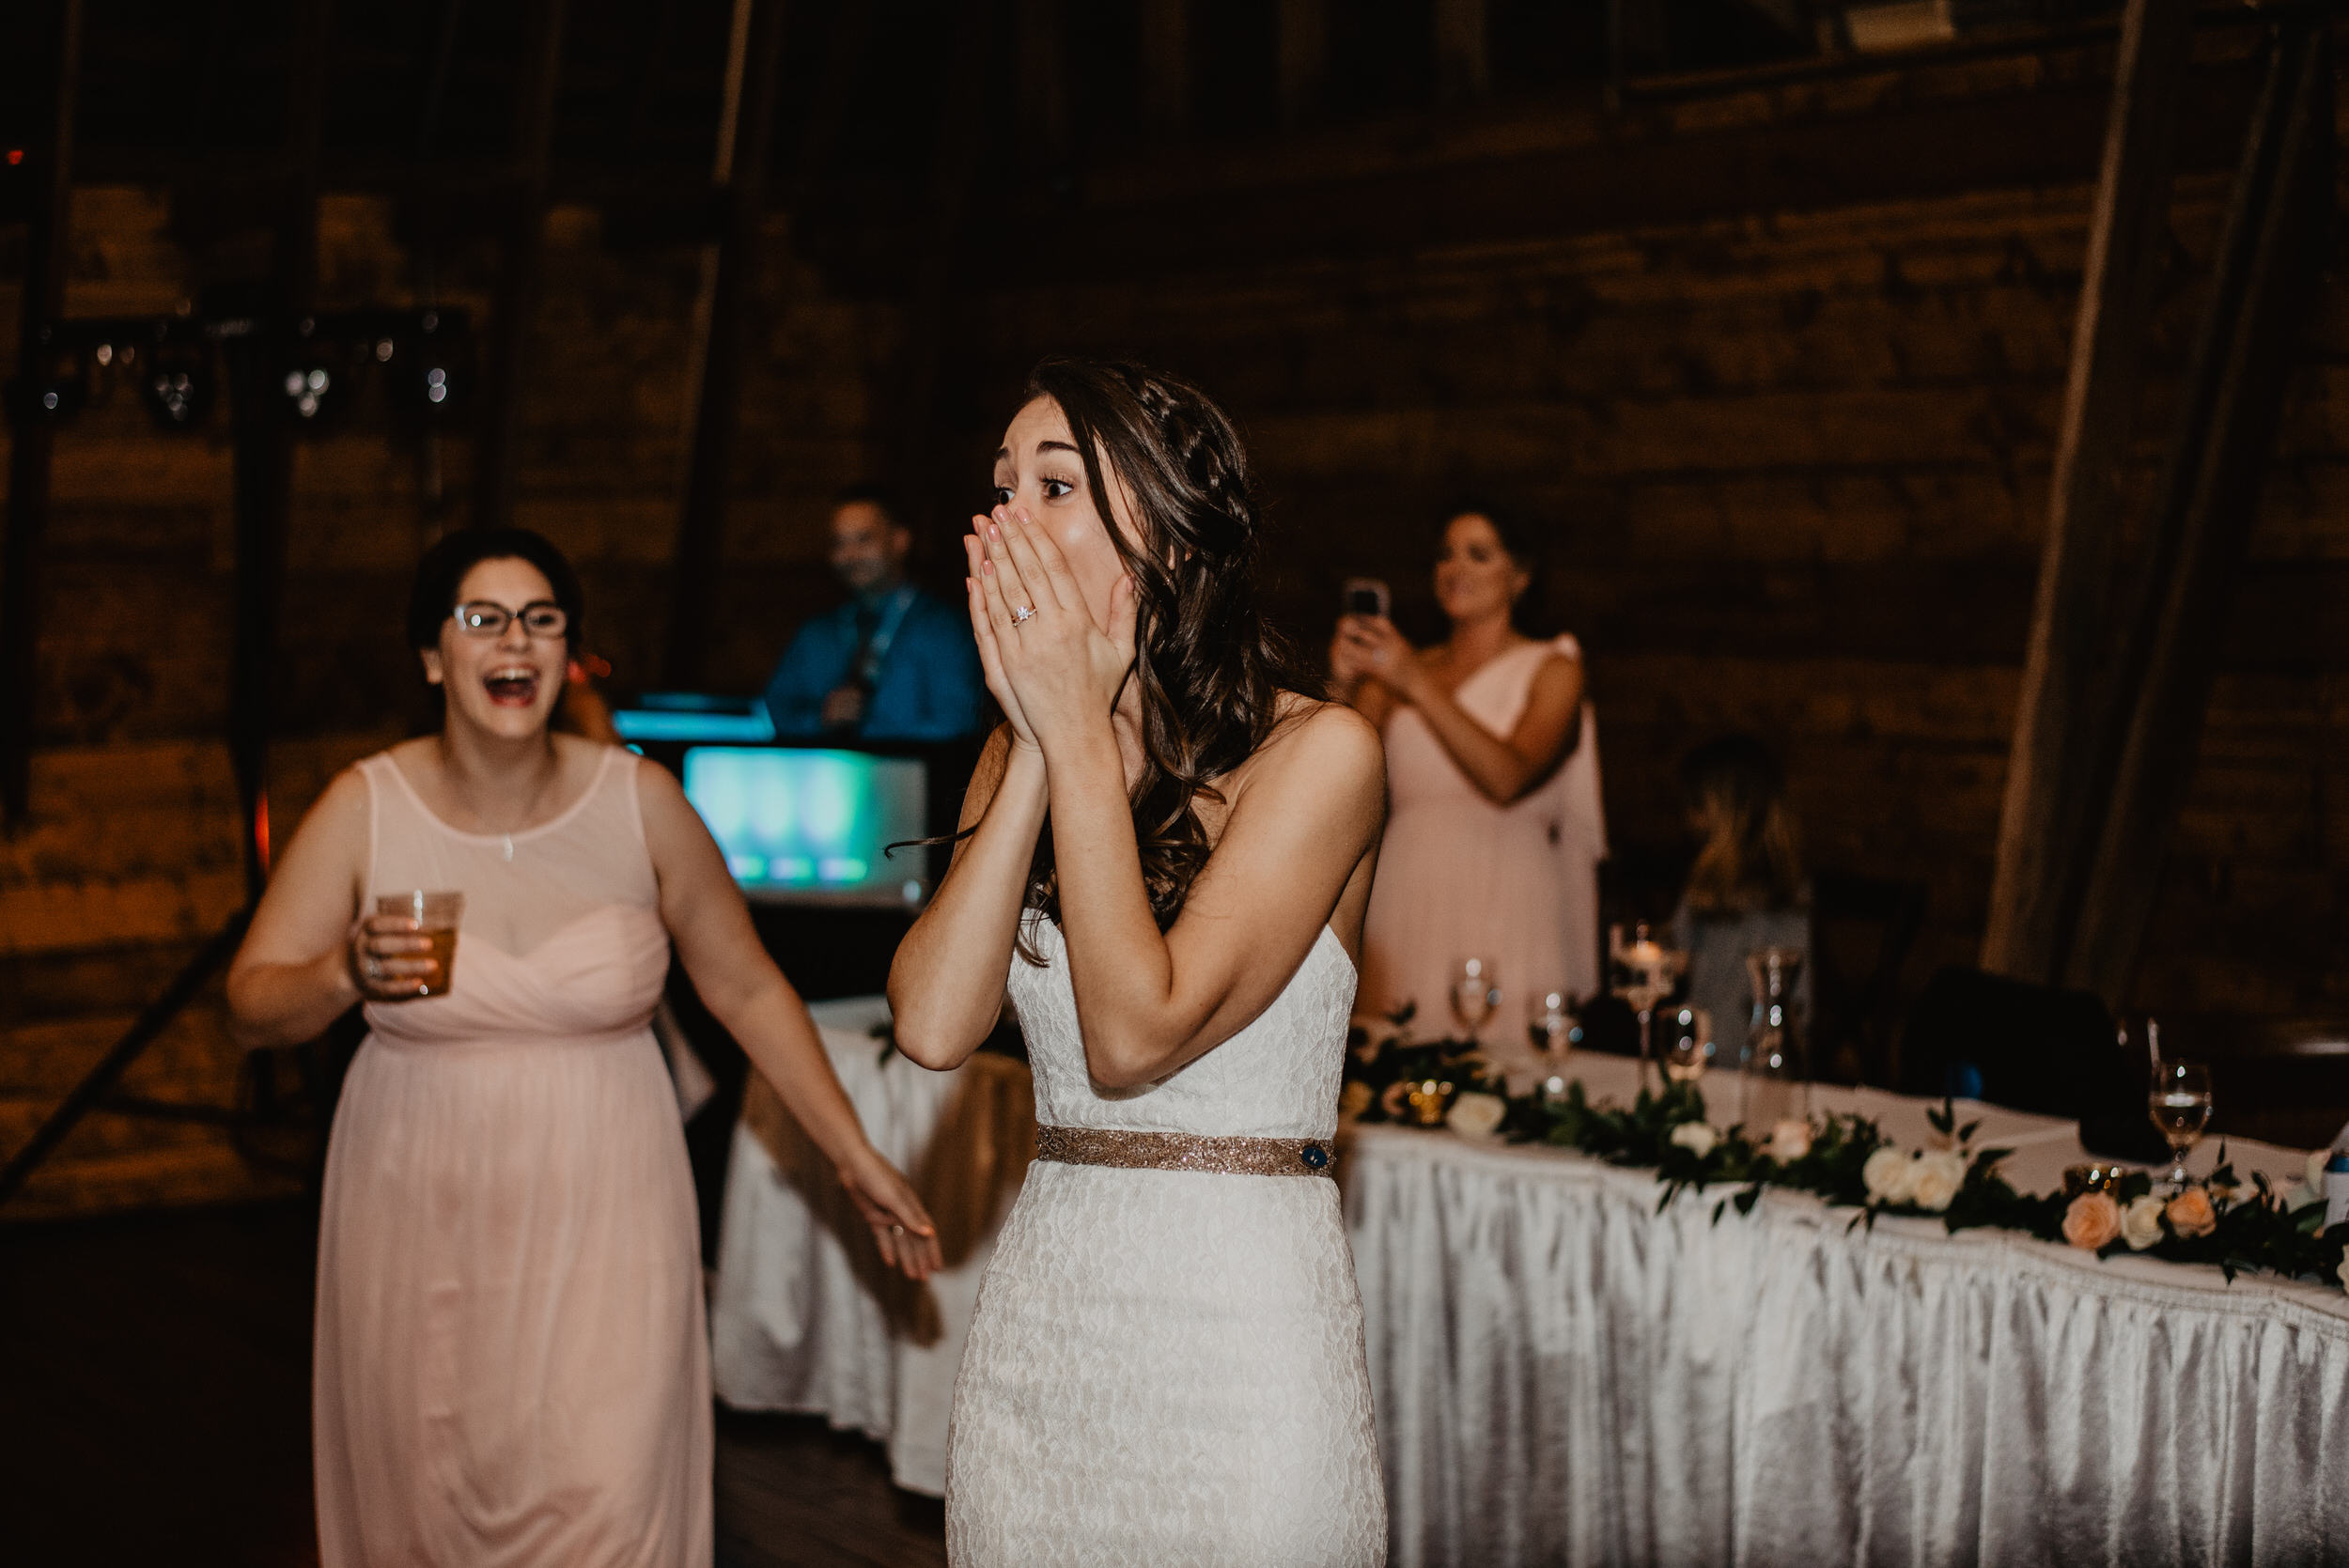 The Barn at the Ackerhurst Dairy Farm Omaha Nebraska Wedding Kaylie Sirek Photography122.jpg